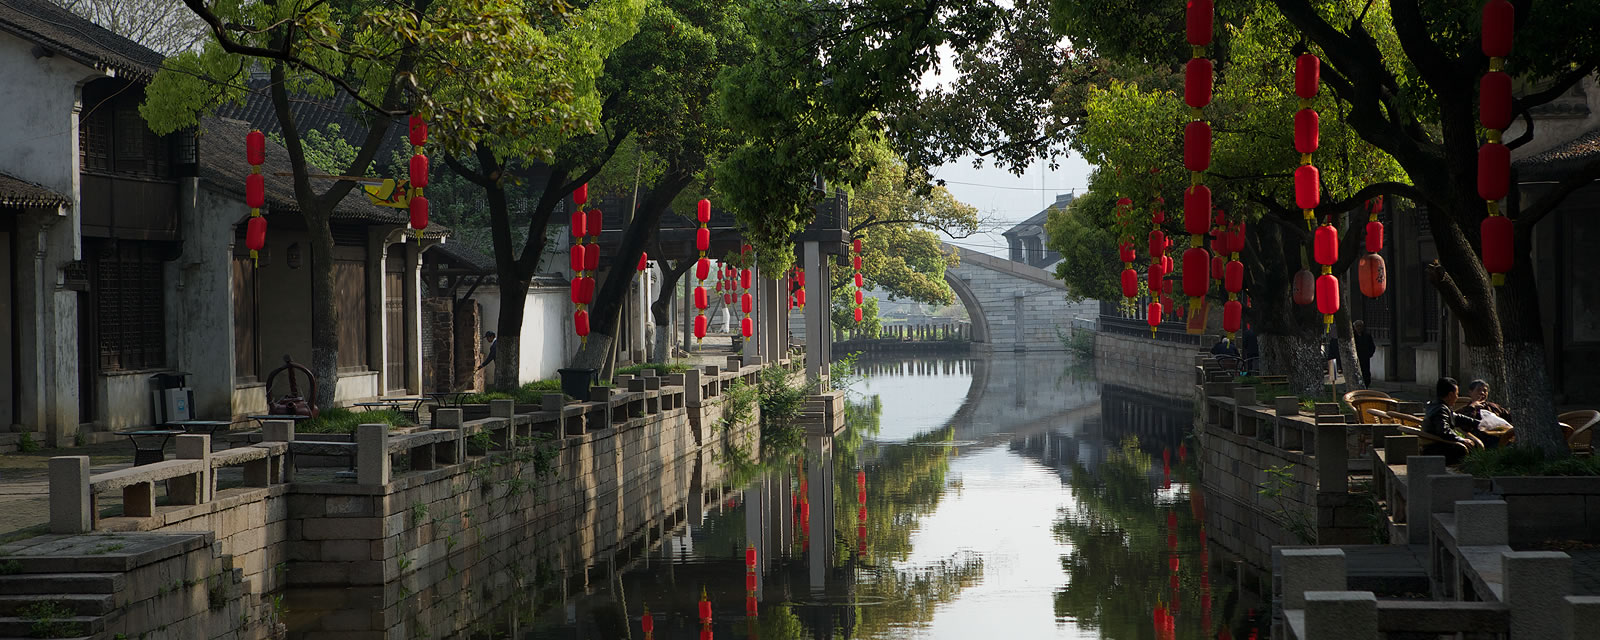 Canal in Wuxi